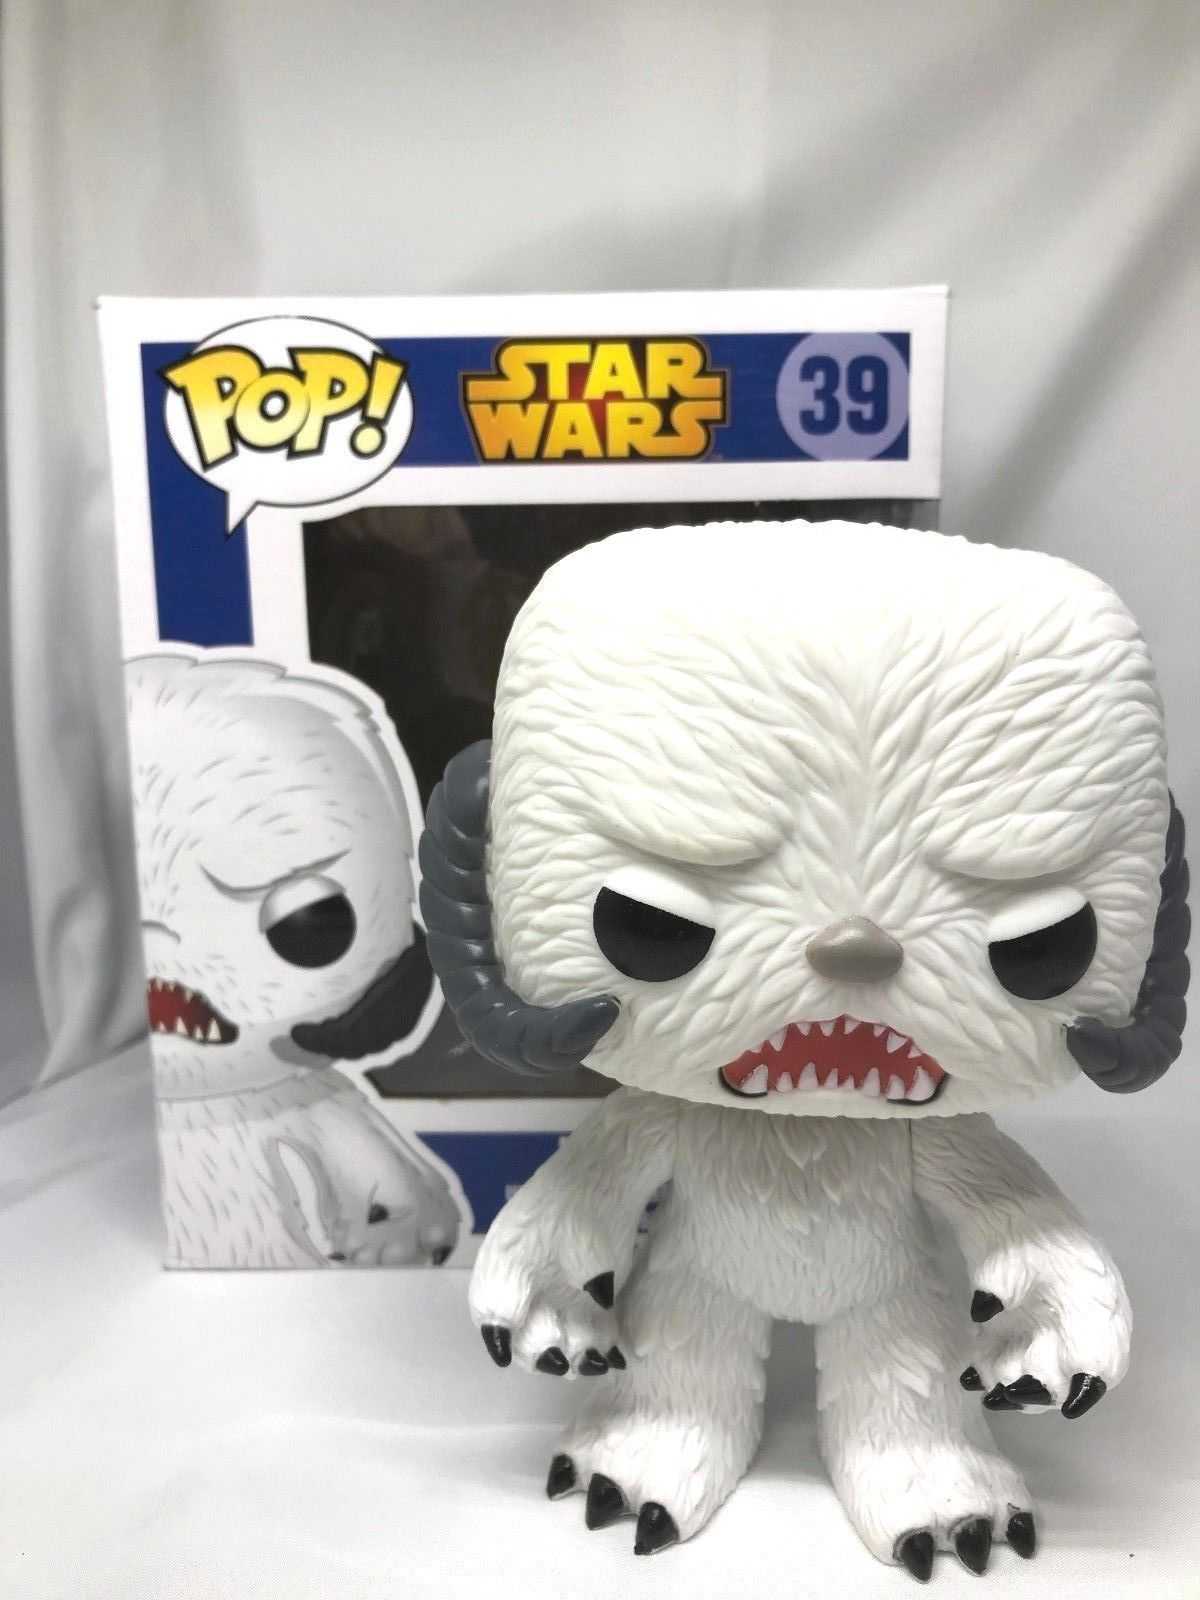 Items And 50 Funko Wars Wampa Hot Star Topic Similar Pop wnP0kX8O